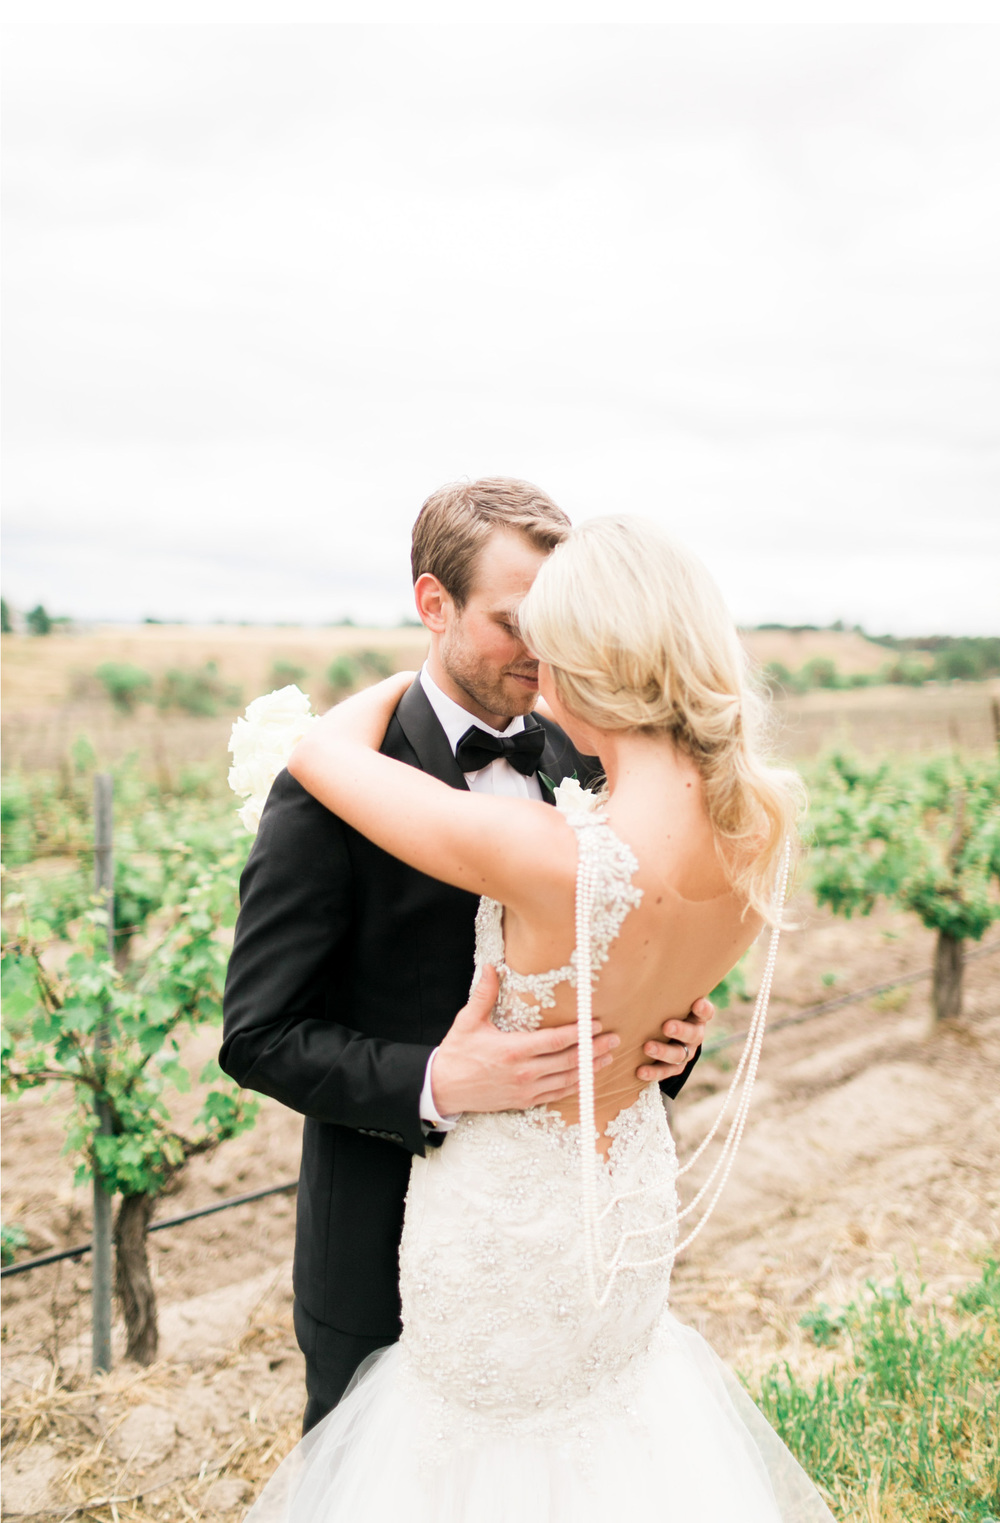 Style-Me-Pretty-Vineyard-Wedding-Natalie-Schutt-Photography_12.jpg